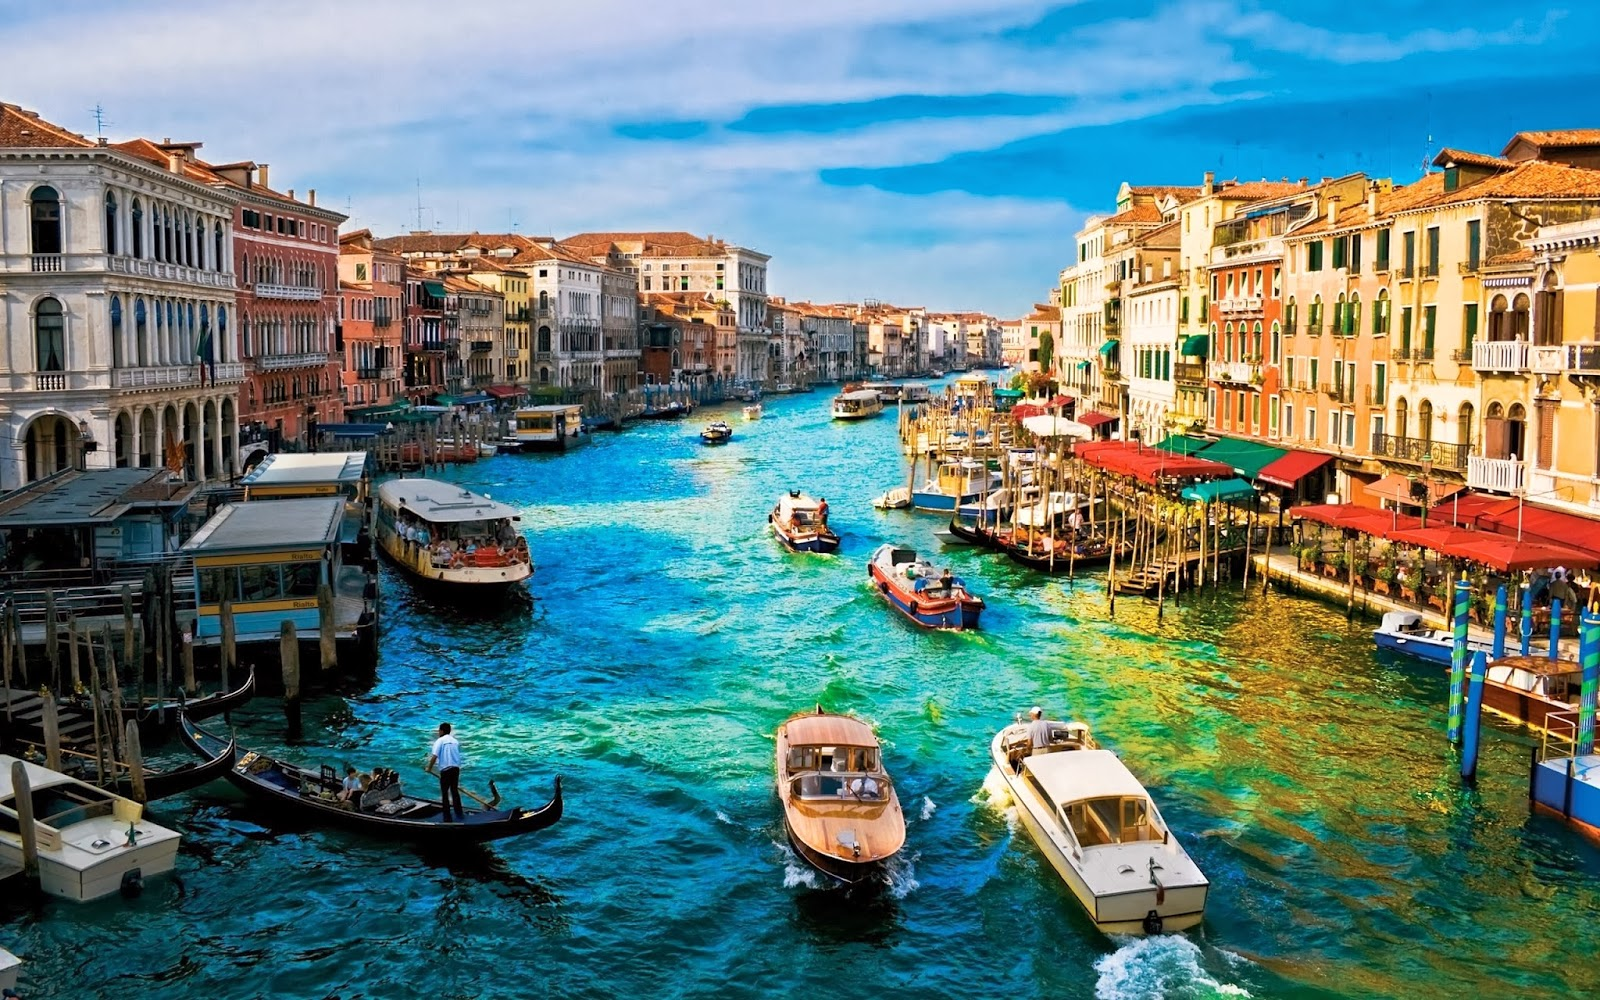 Most famous places in italy techzhelp for What are the best places to visit in italy